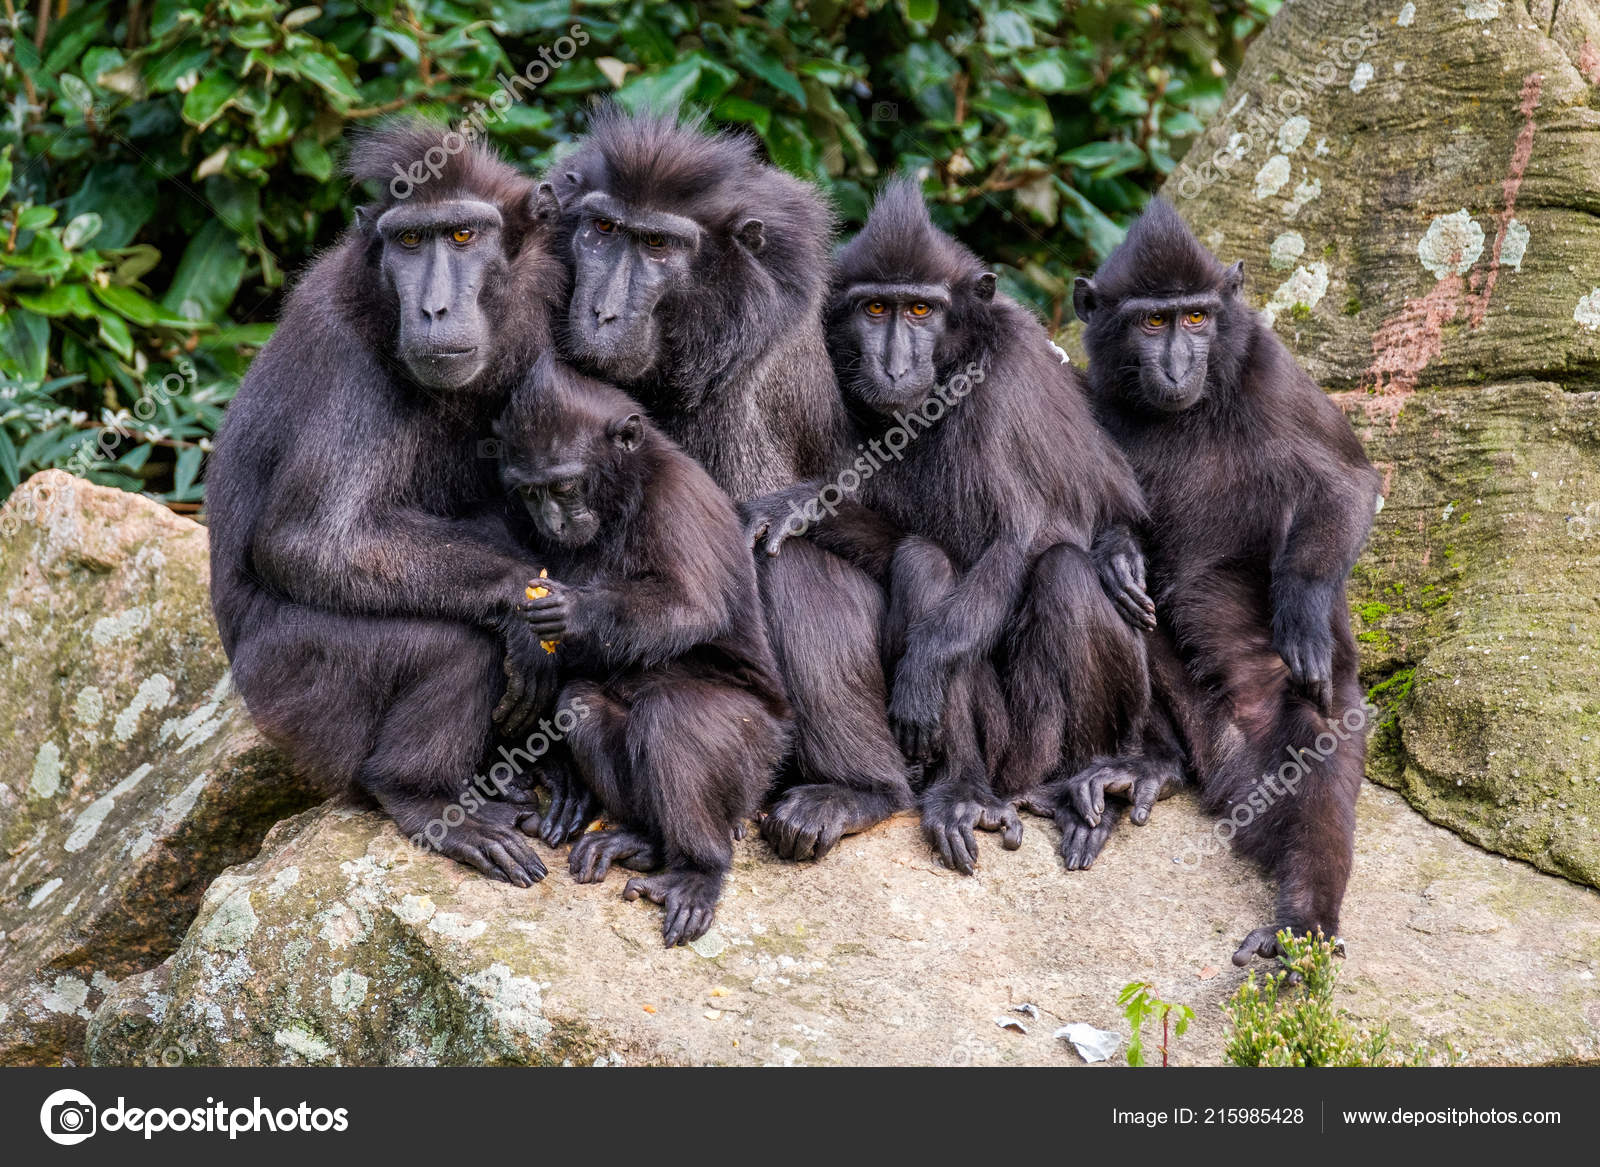 Images et smileys...en joutes - Page 3 Depositphotos_215985428-stock-photo-family-portrait-crested-macaque-monkeys